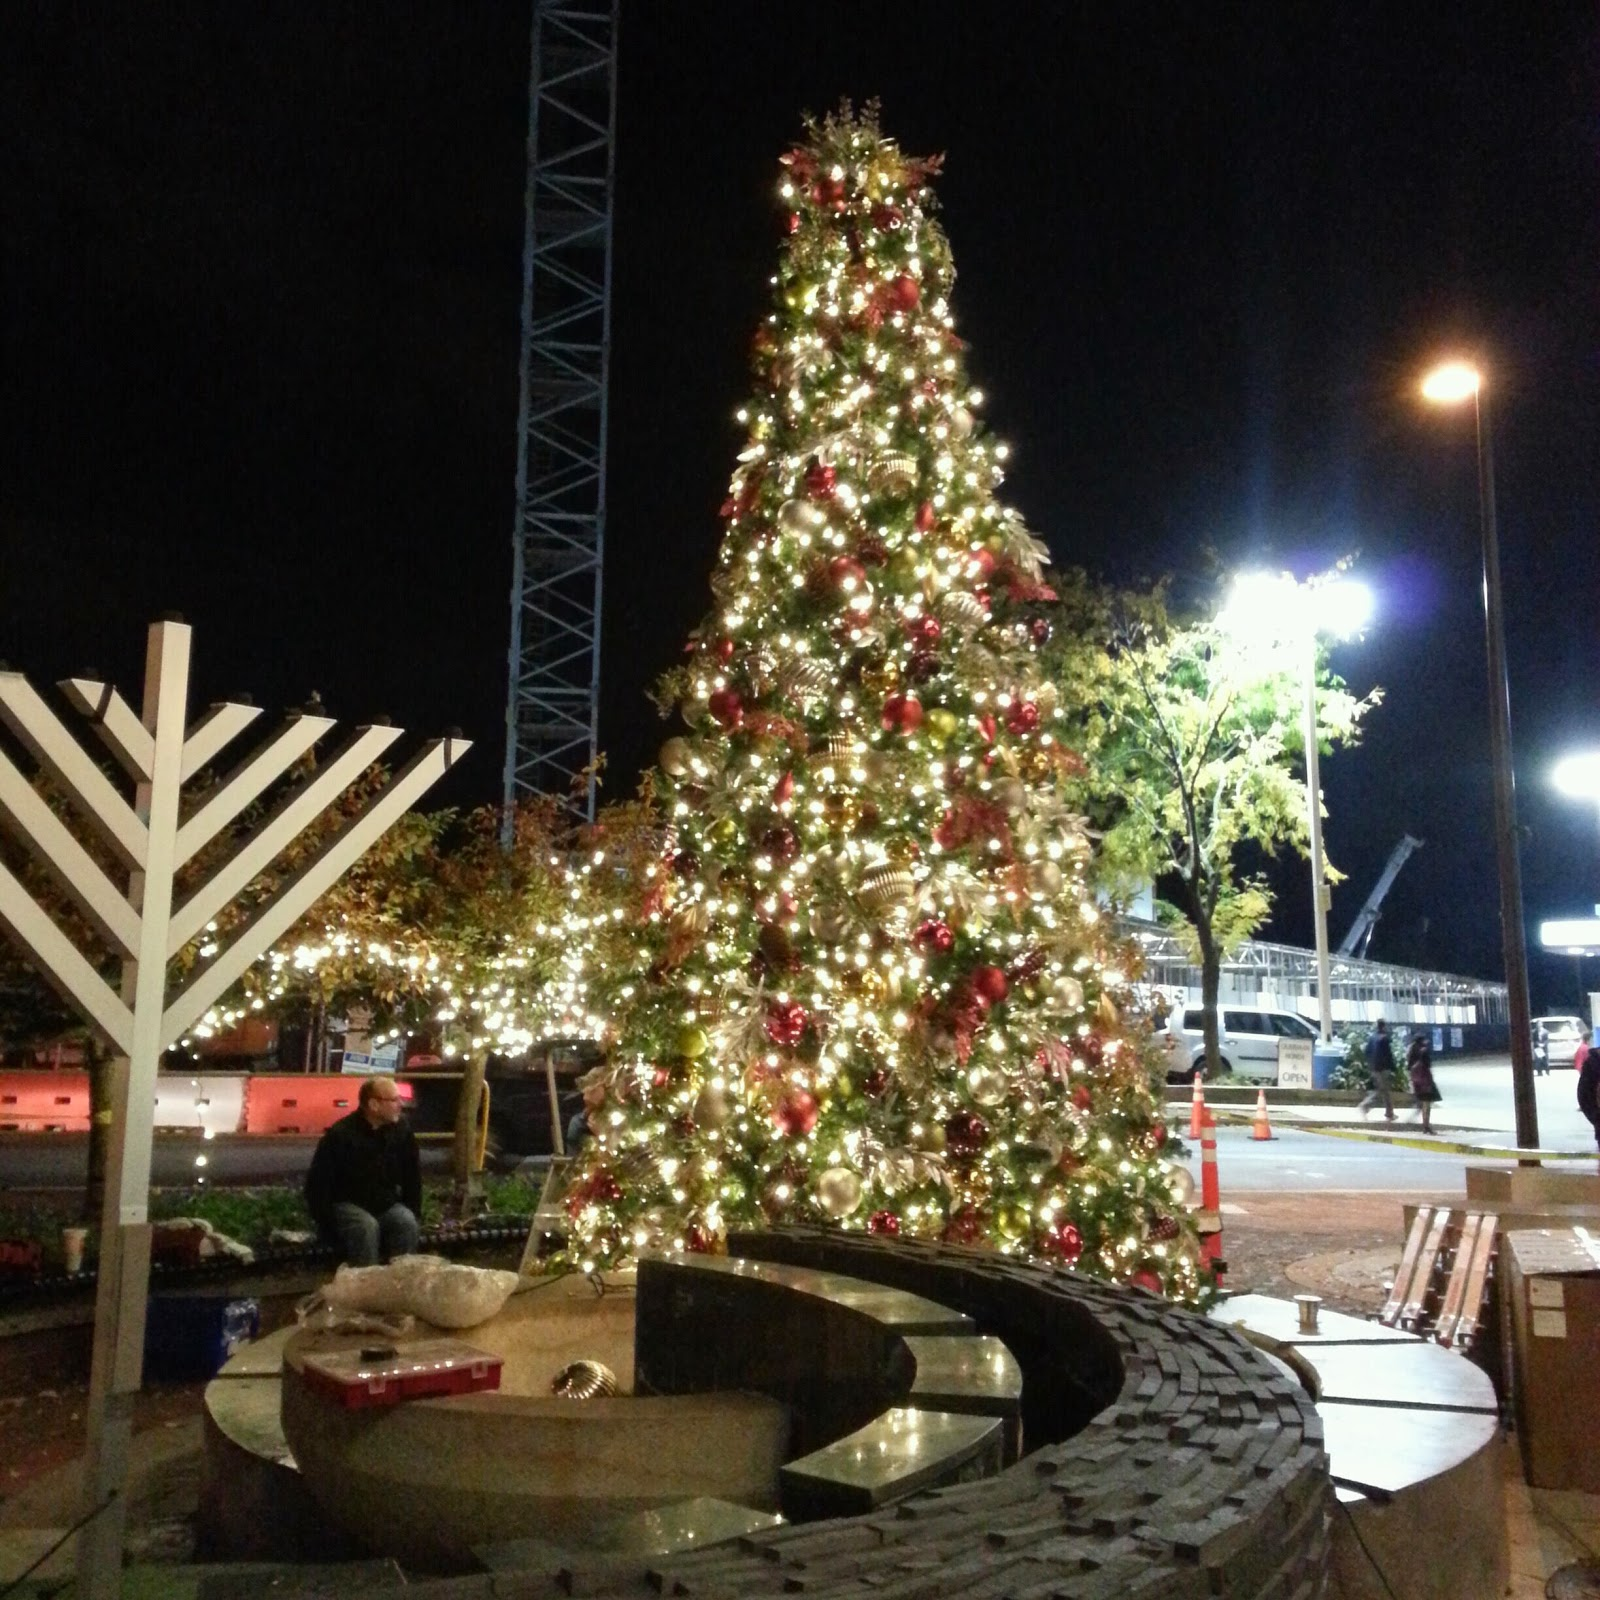 Christmas Decorations Ideas For Hotels: Robert Dyer @ Bethesda Row: BETHESDA ROW CHRISTMAS TREES